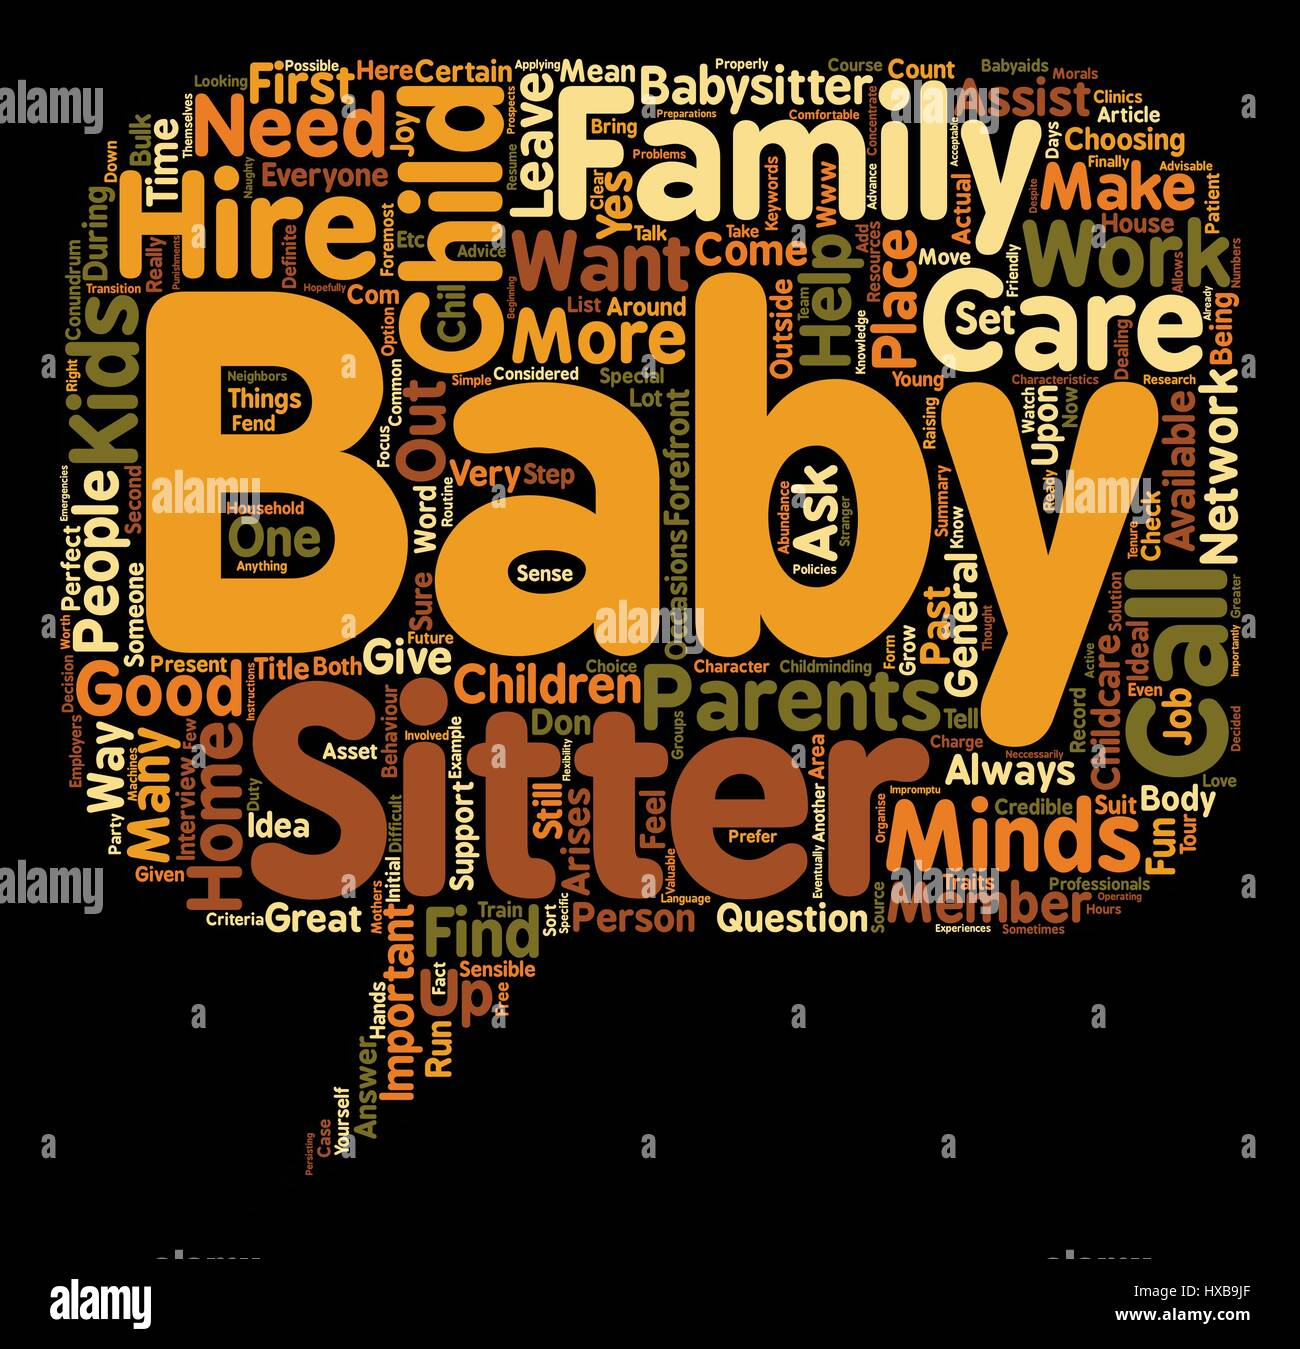 how to hire the perfect baby sitter or the child care conundrum text